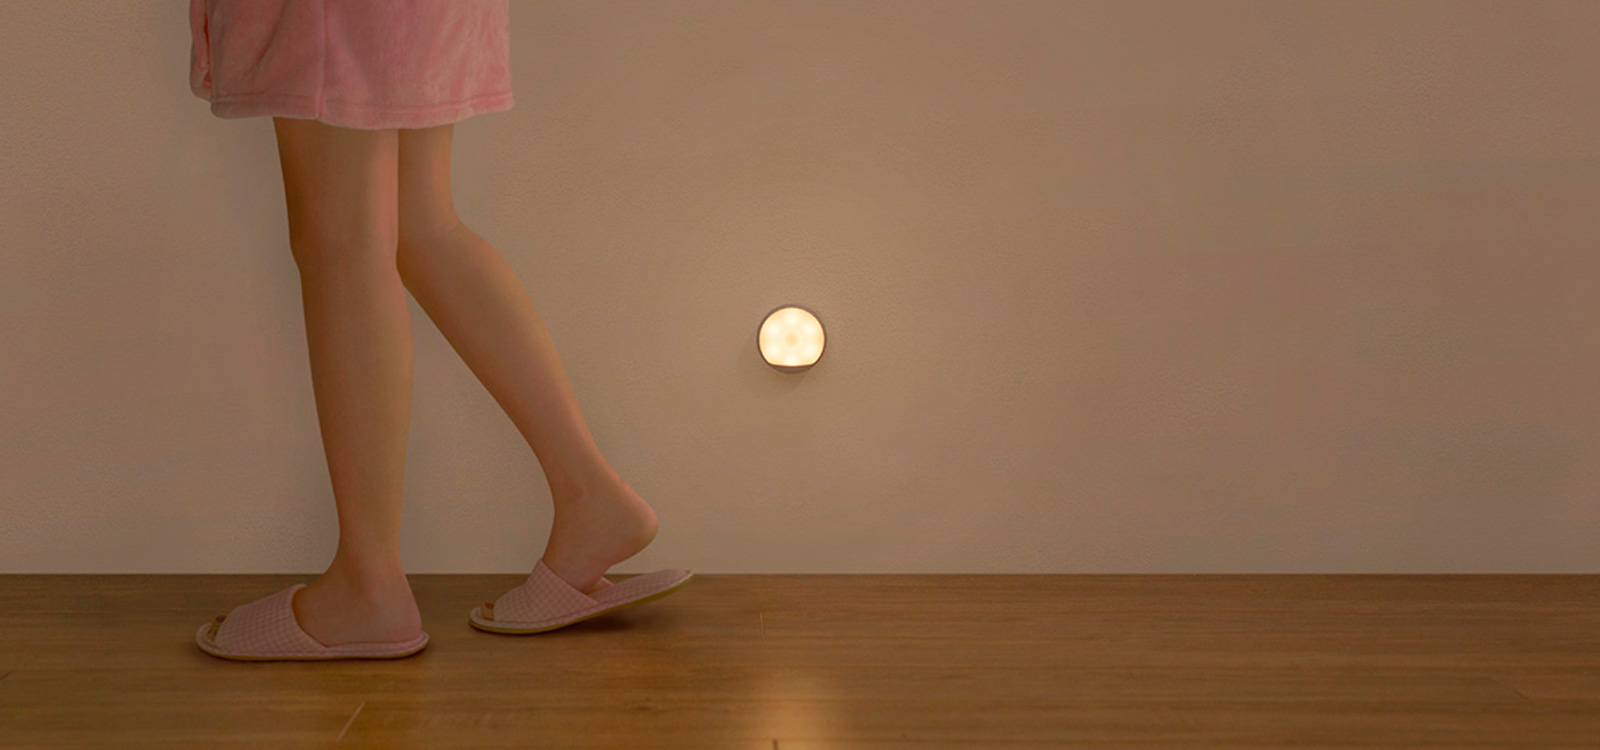 Ночник Yeelight Xiaomi Rechargeable Night Light